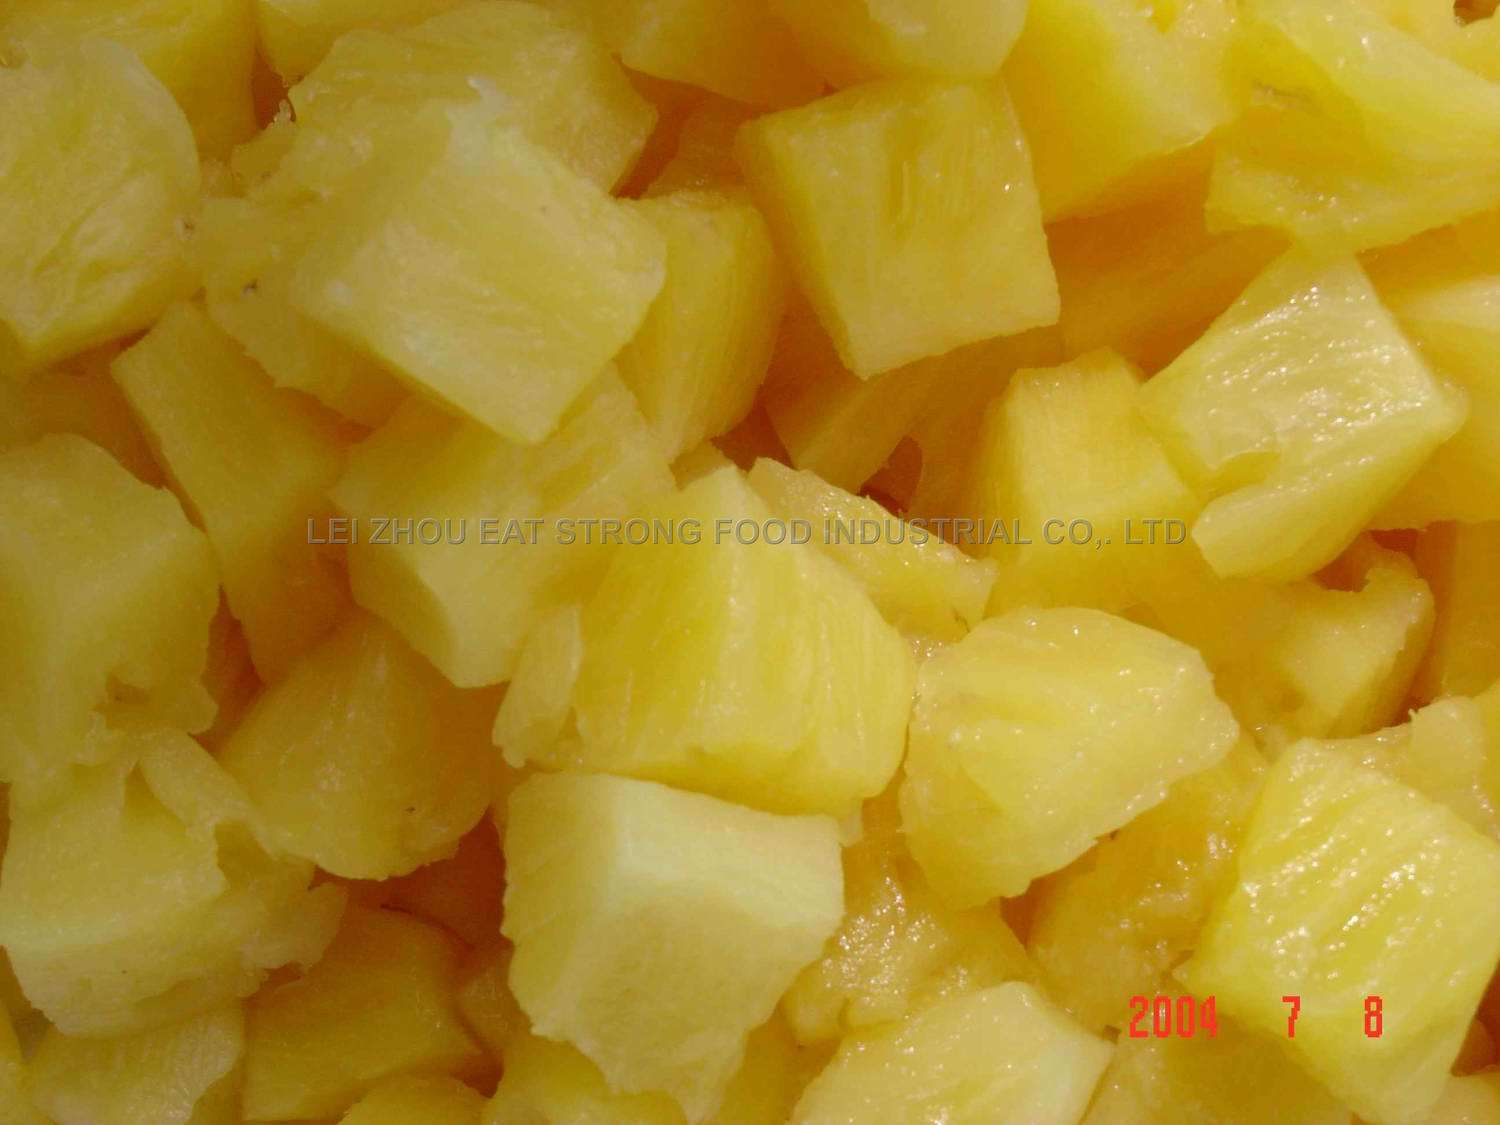 http://image.made-in-china.com/2f0j00RvpaZKPyCuco/Canned-Pineapple-Chunk.jpg